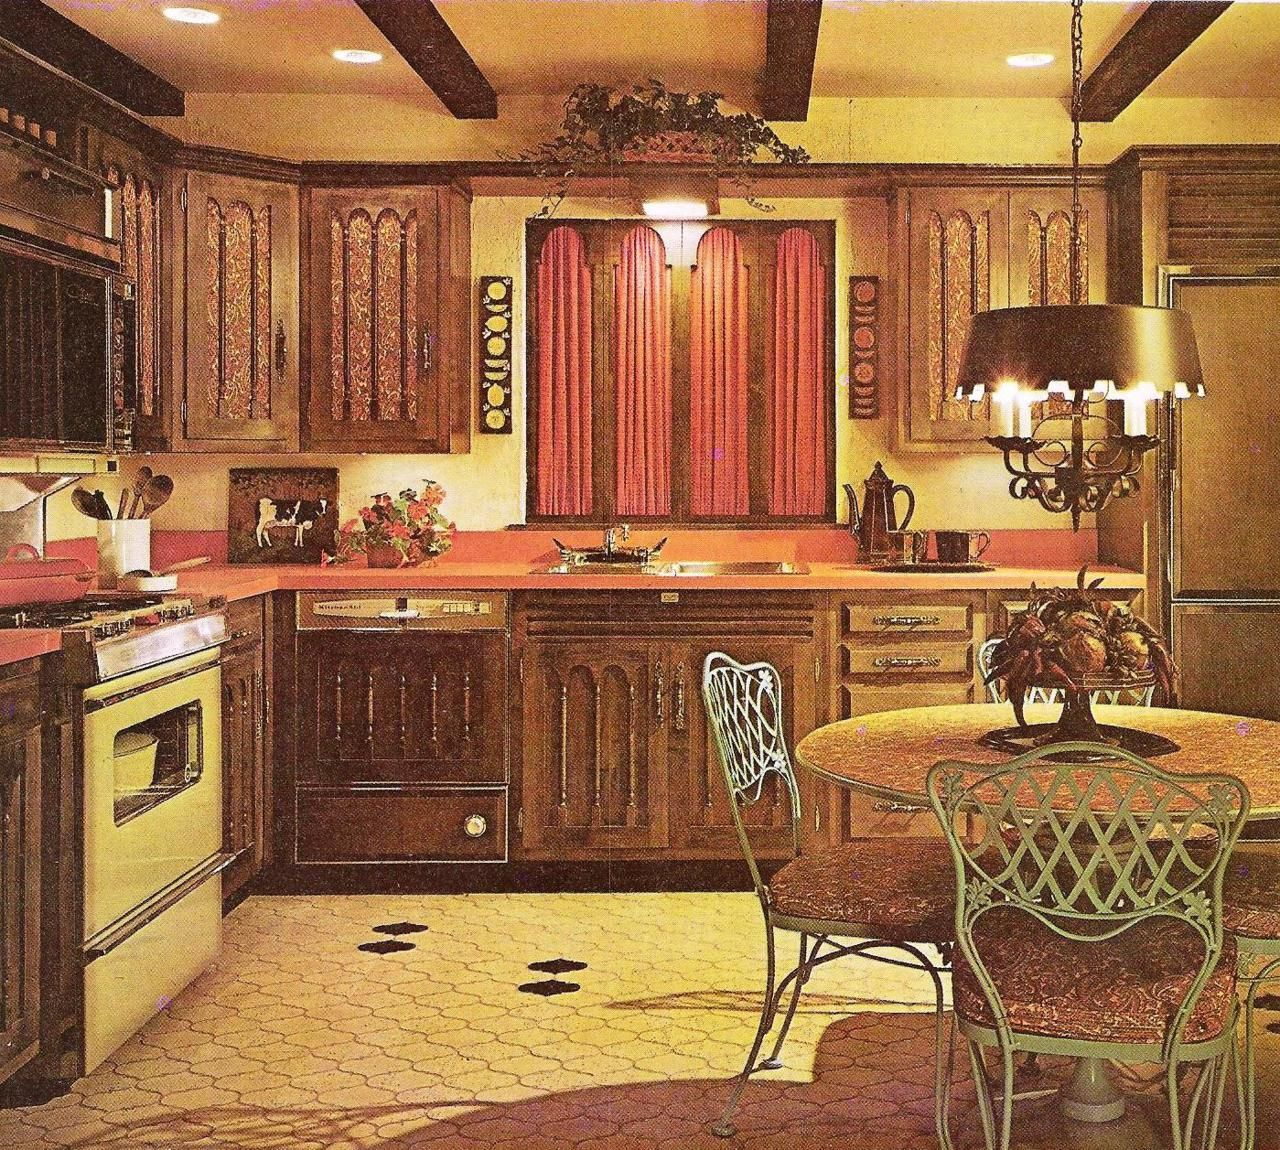 mediterranean style kitchen 1972 vintageeeeeeeee. Black Bedroom Furniture Sets. Home Design Ideas